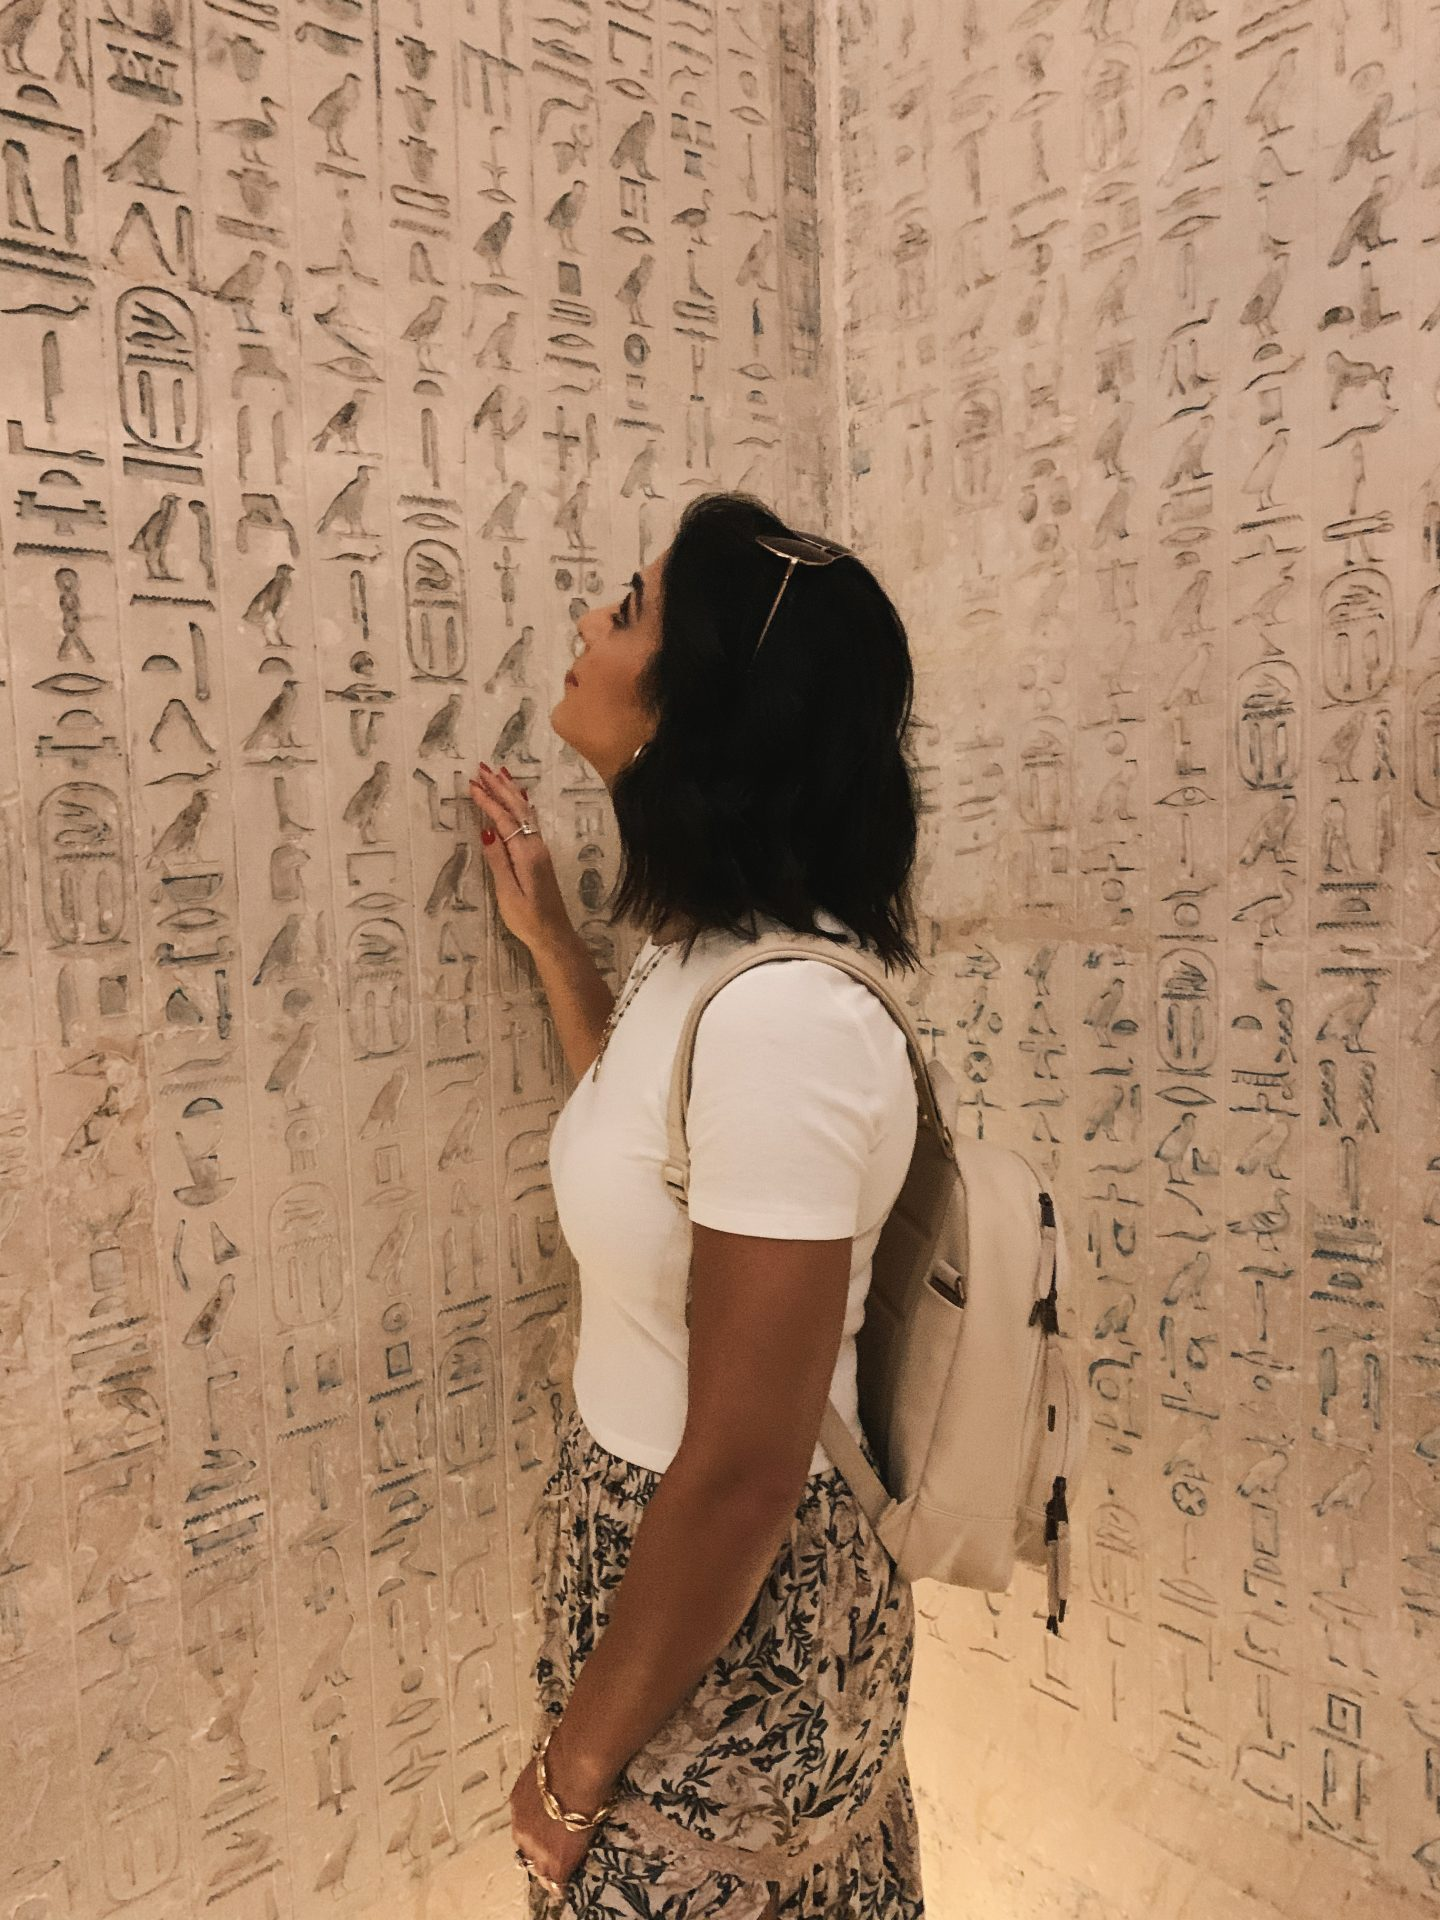 A woman looking at Egyptian hieroglyphics inside a pyramid in Egypt at Saqqara.